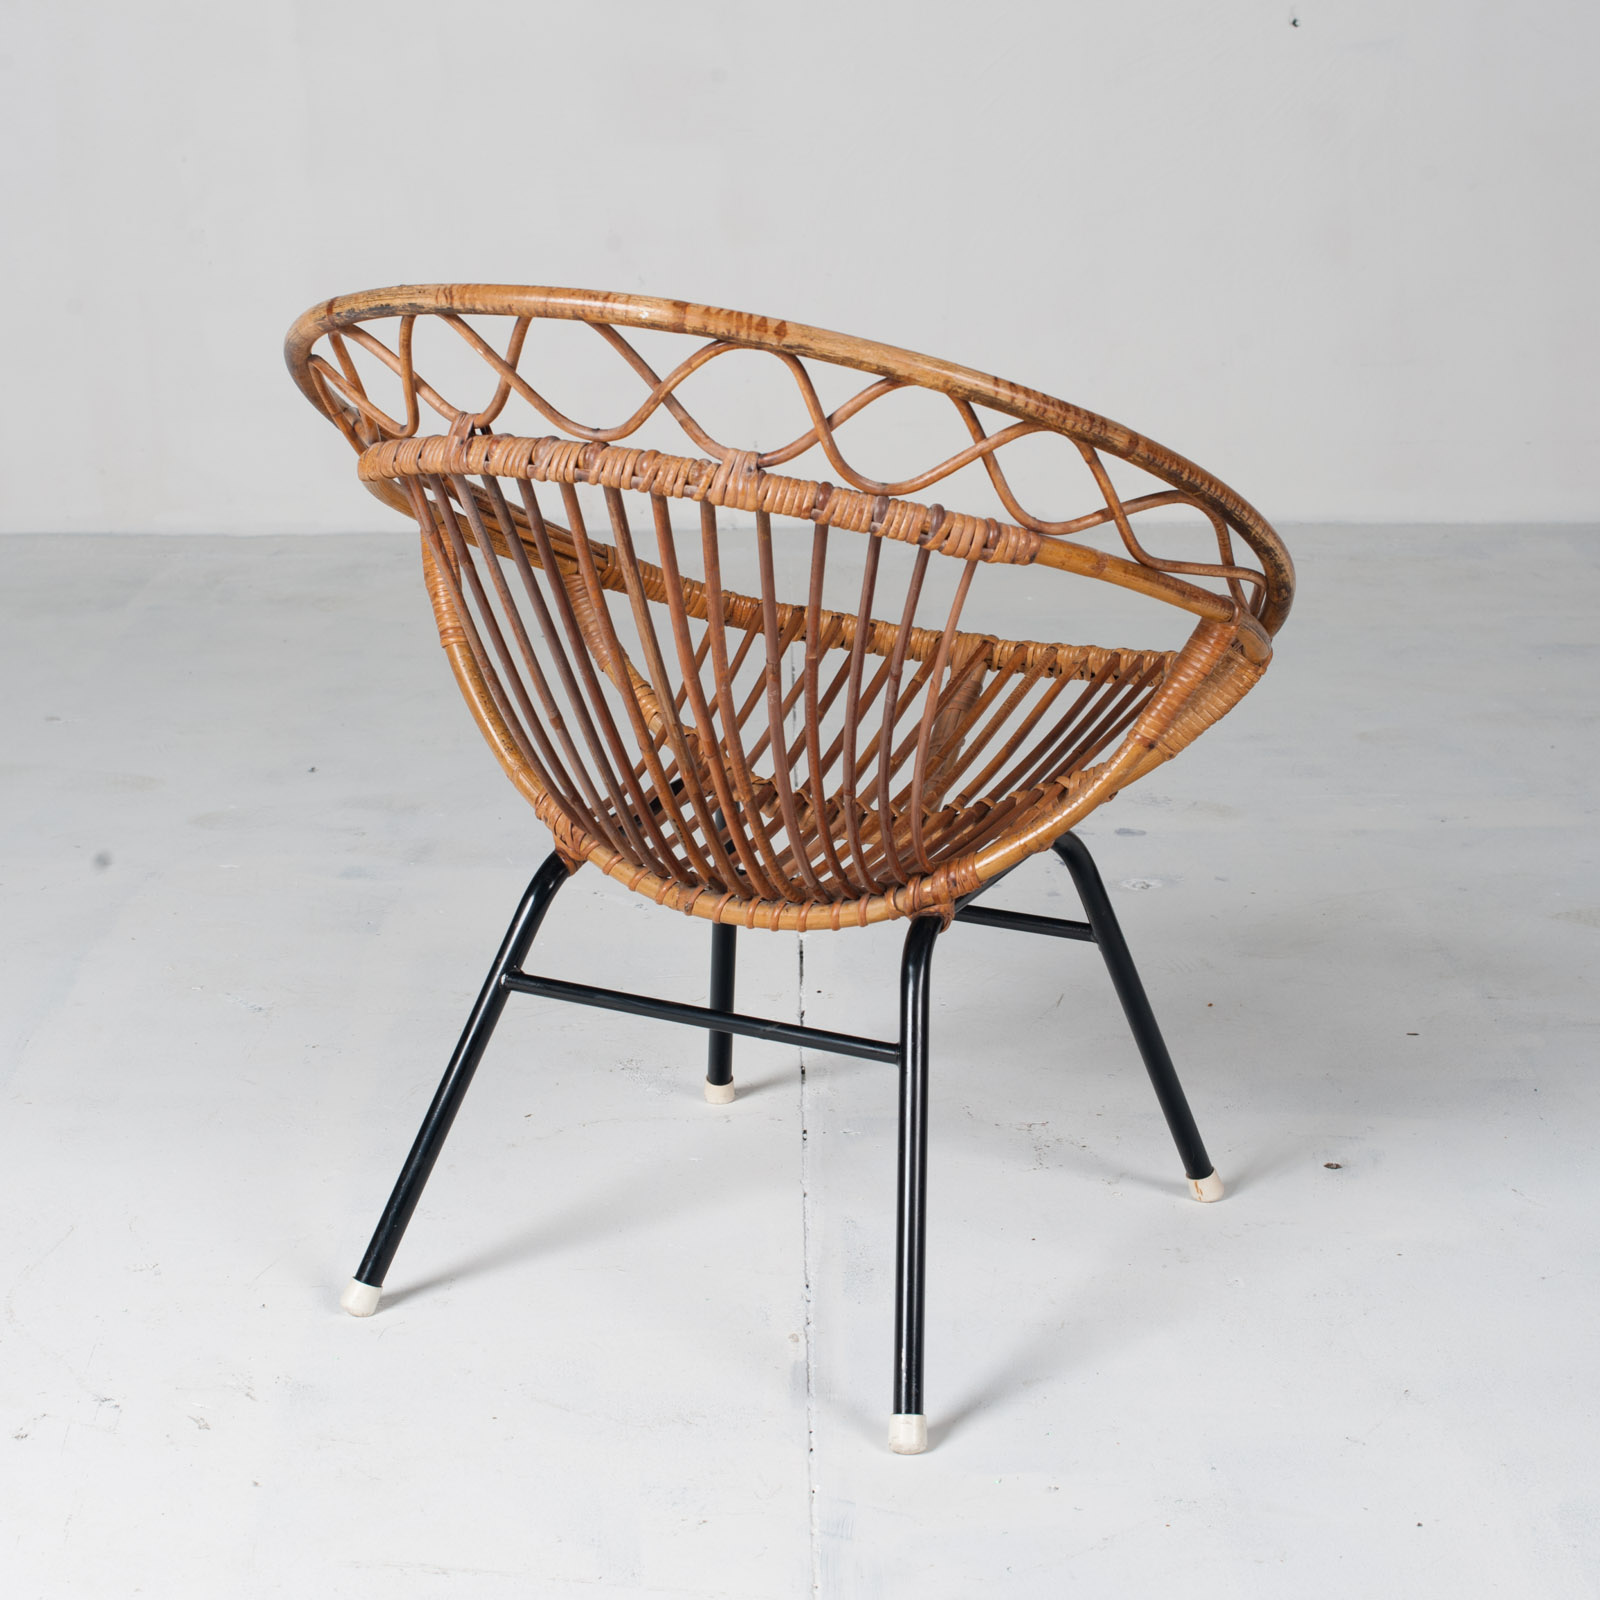 Rattan Lounge Chair By Rohe Noordwolde 1960s Netherlands 10